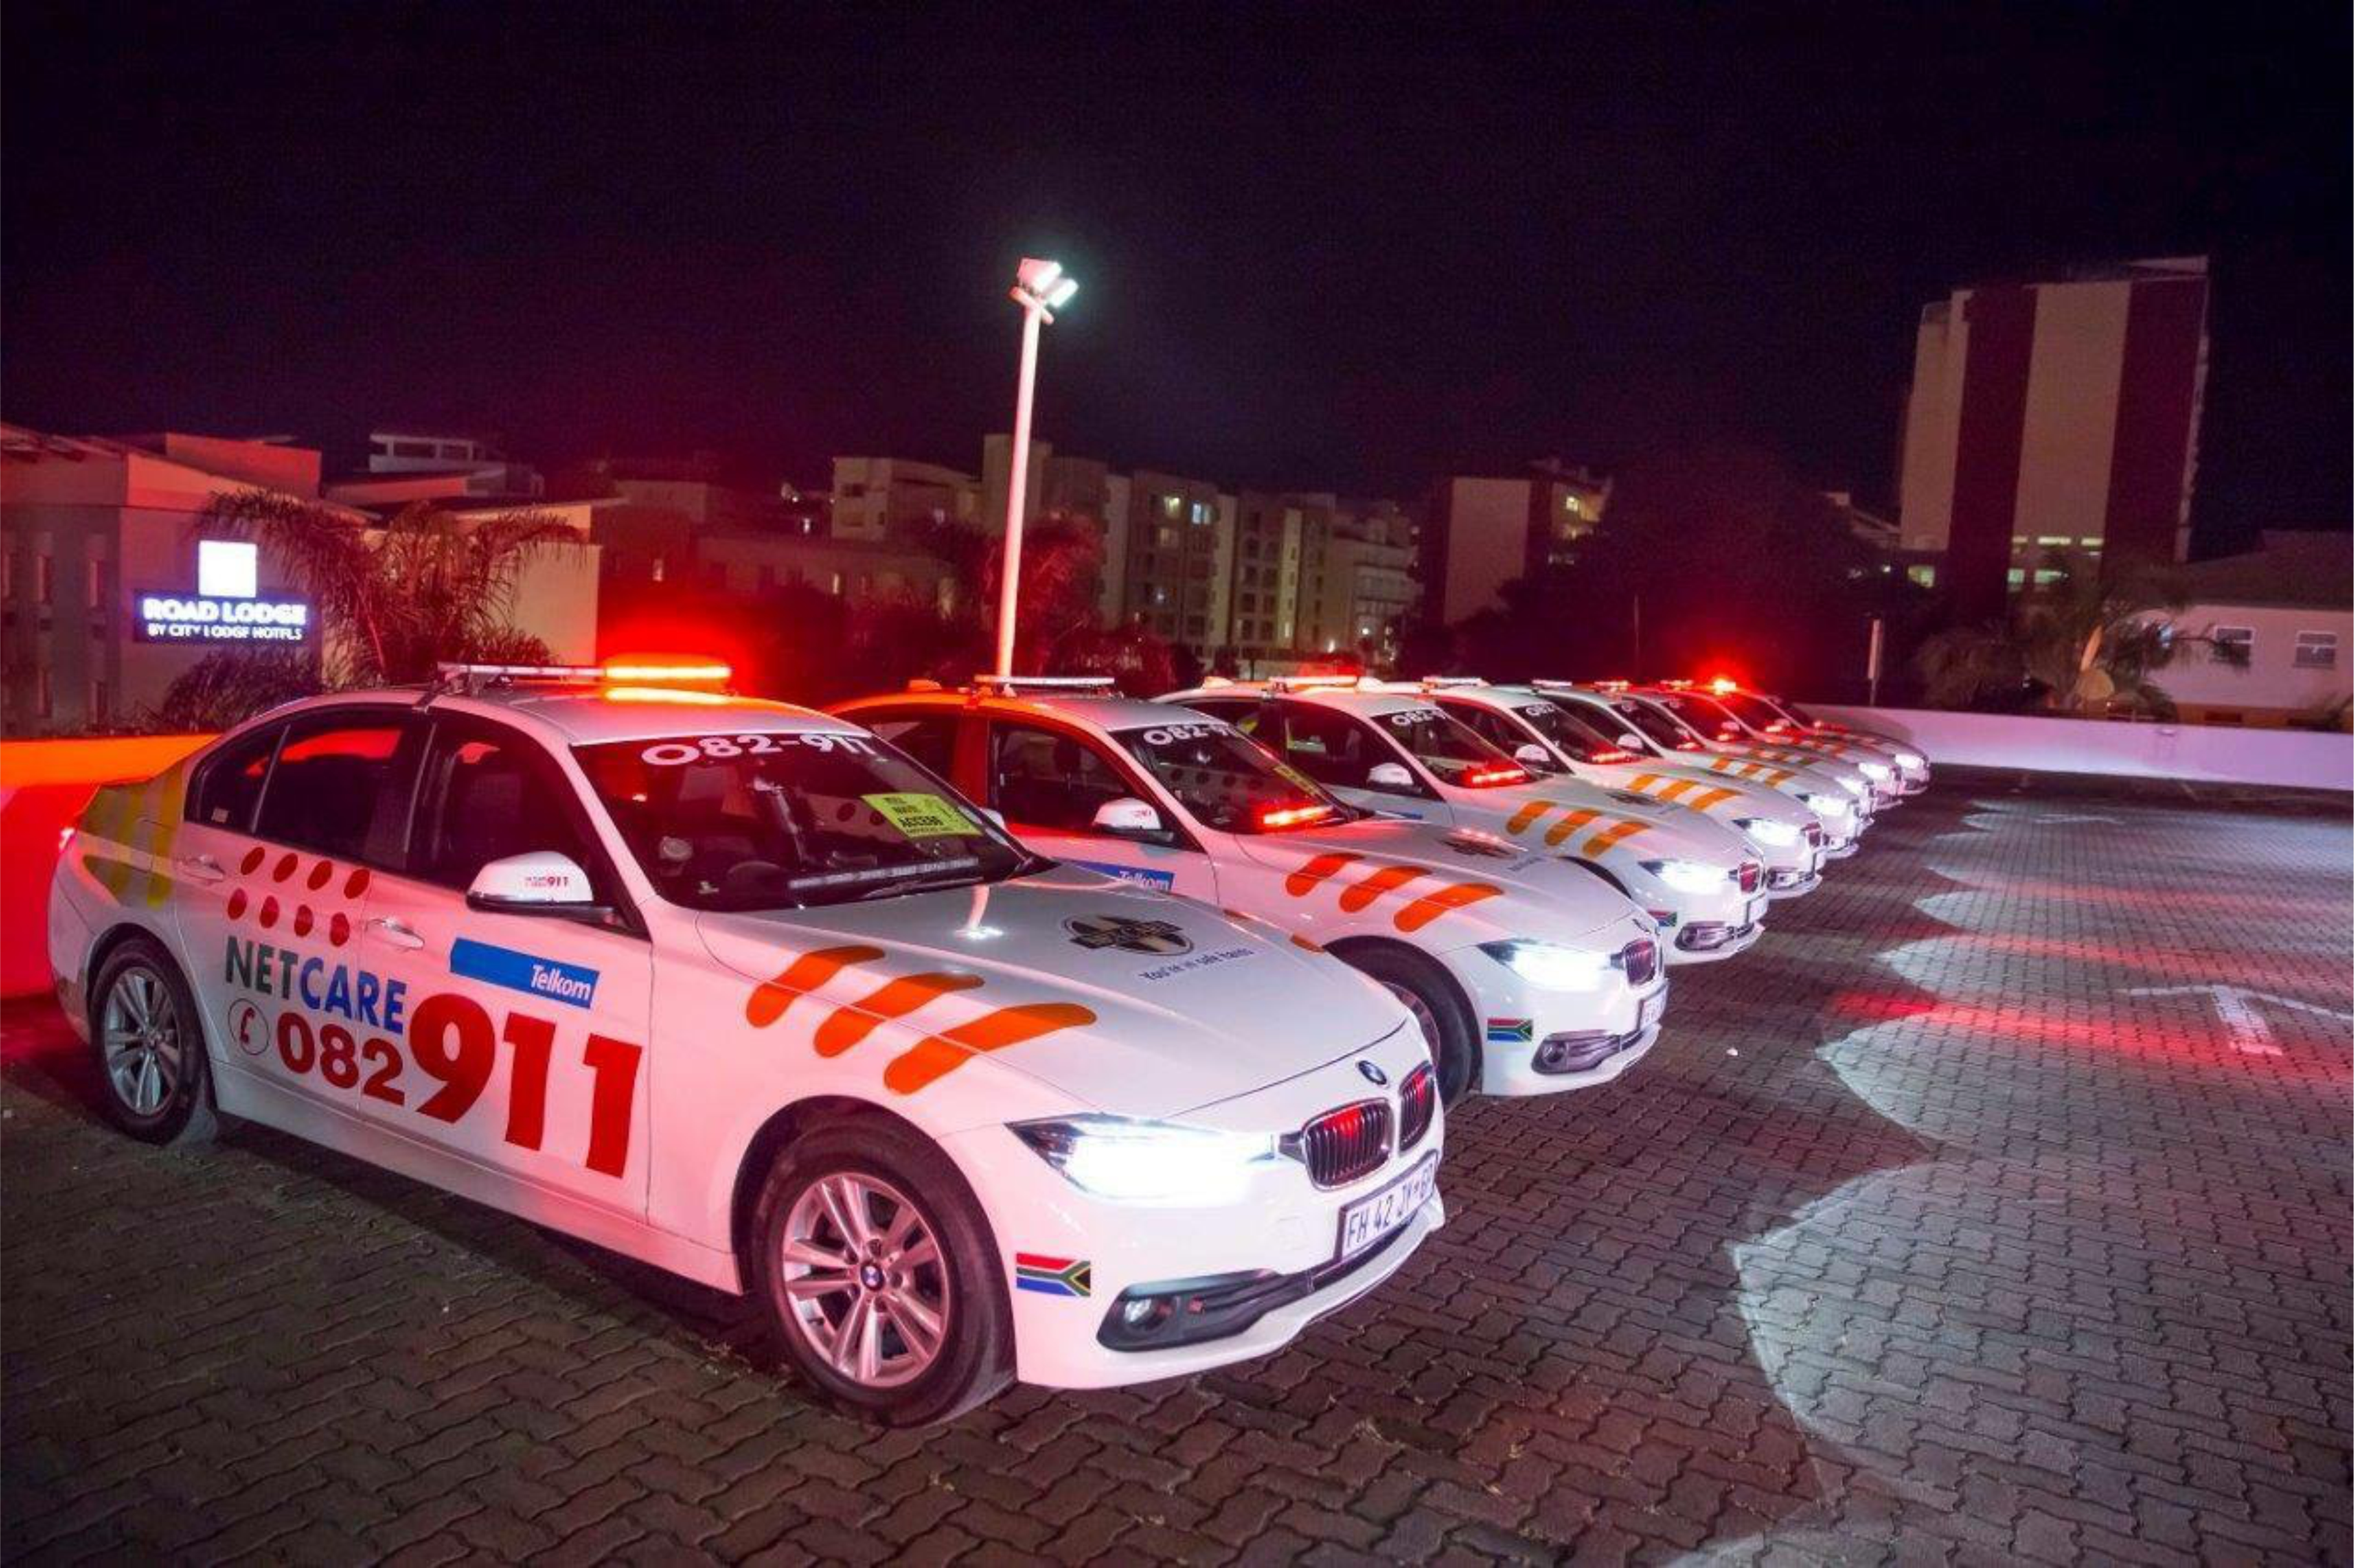 NETCARE FLEET AT NIGHT